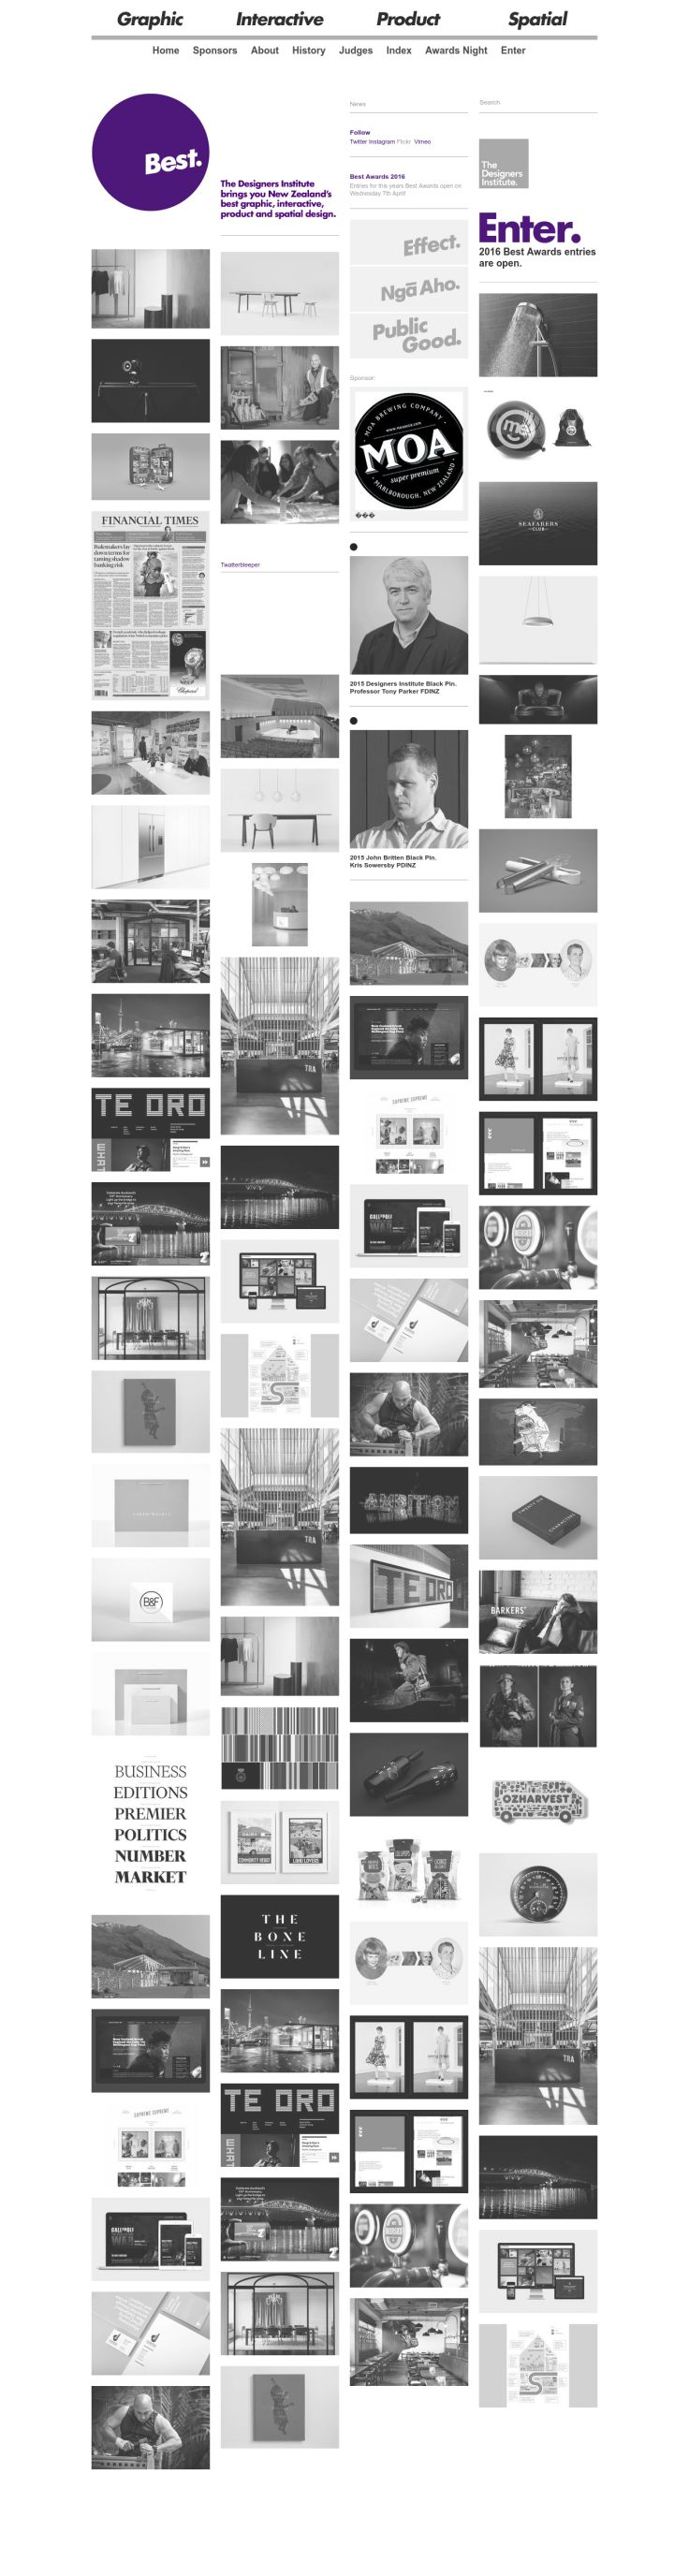 Website'http%3A%2F%2Fbestawards.co.nz%2F' snapped on Page2images!